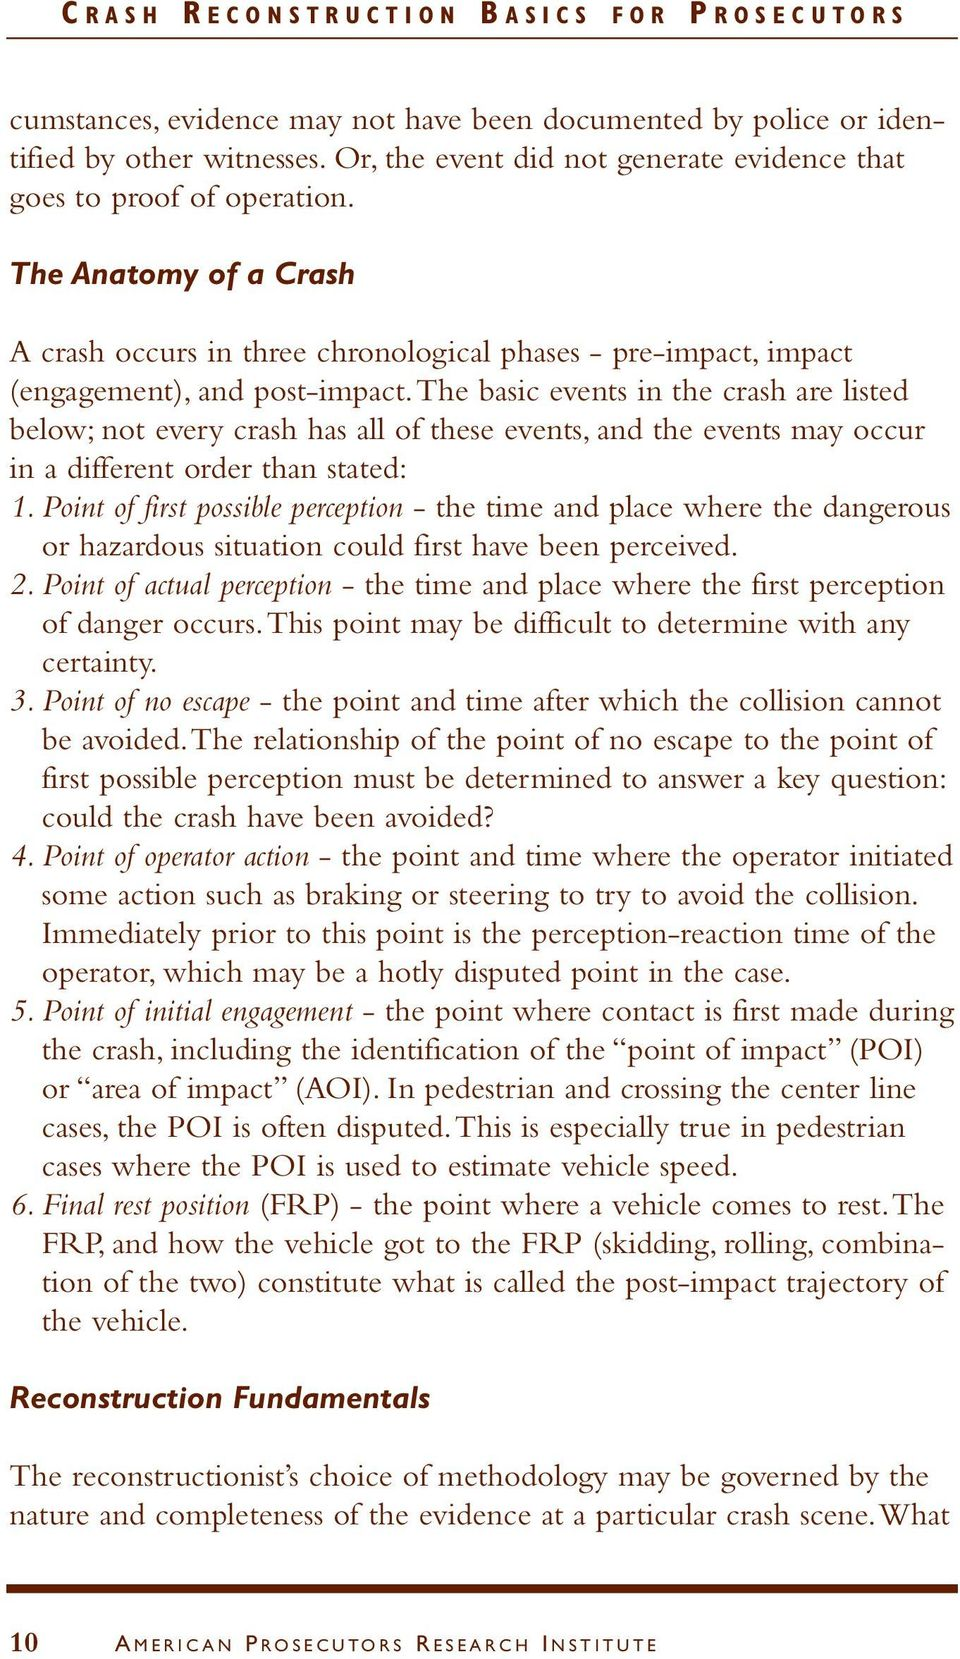 the basic events in the crash are listed below; not every crash has all of these events, and the events may occur in a different order than stated: 1.